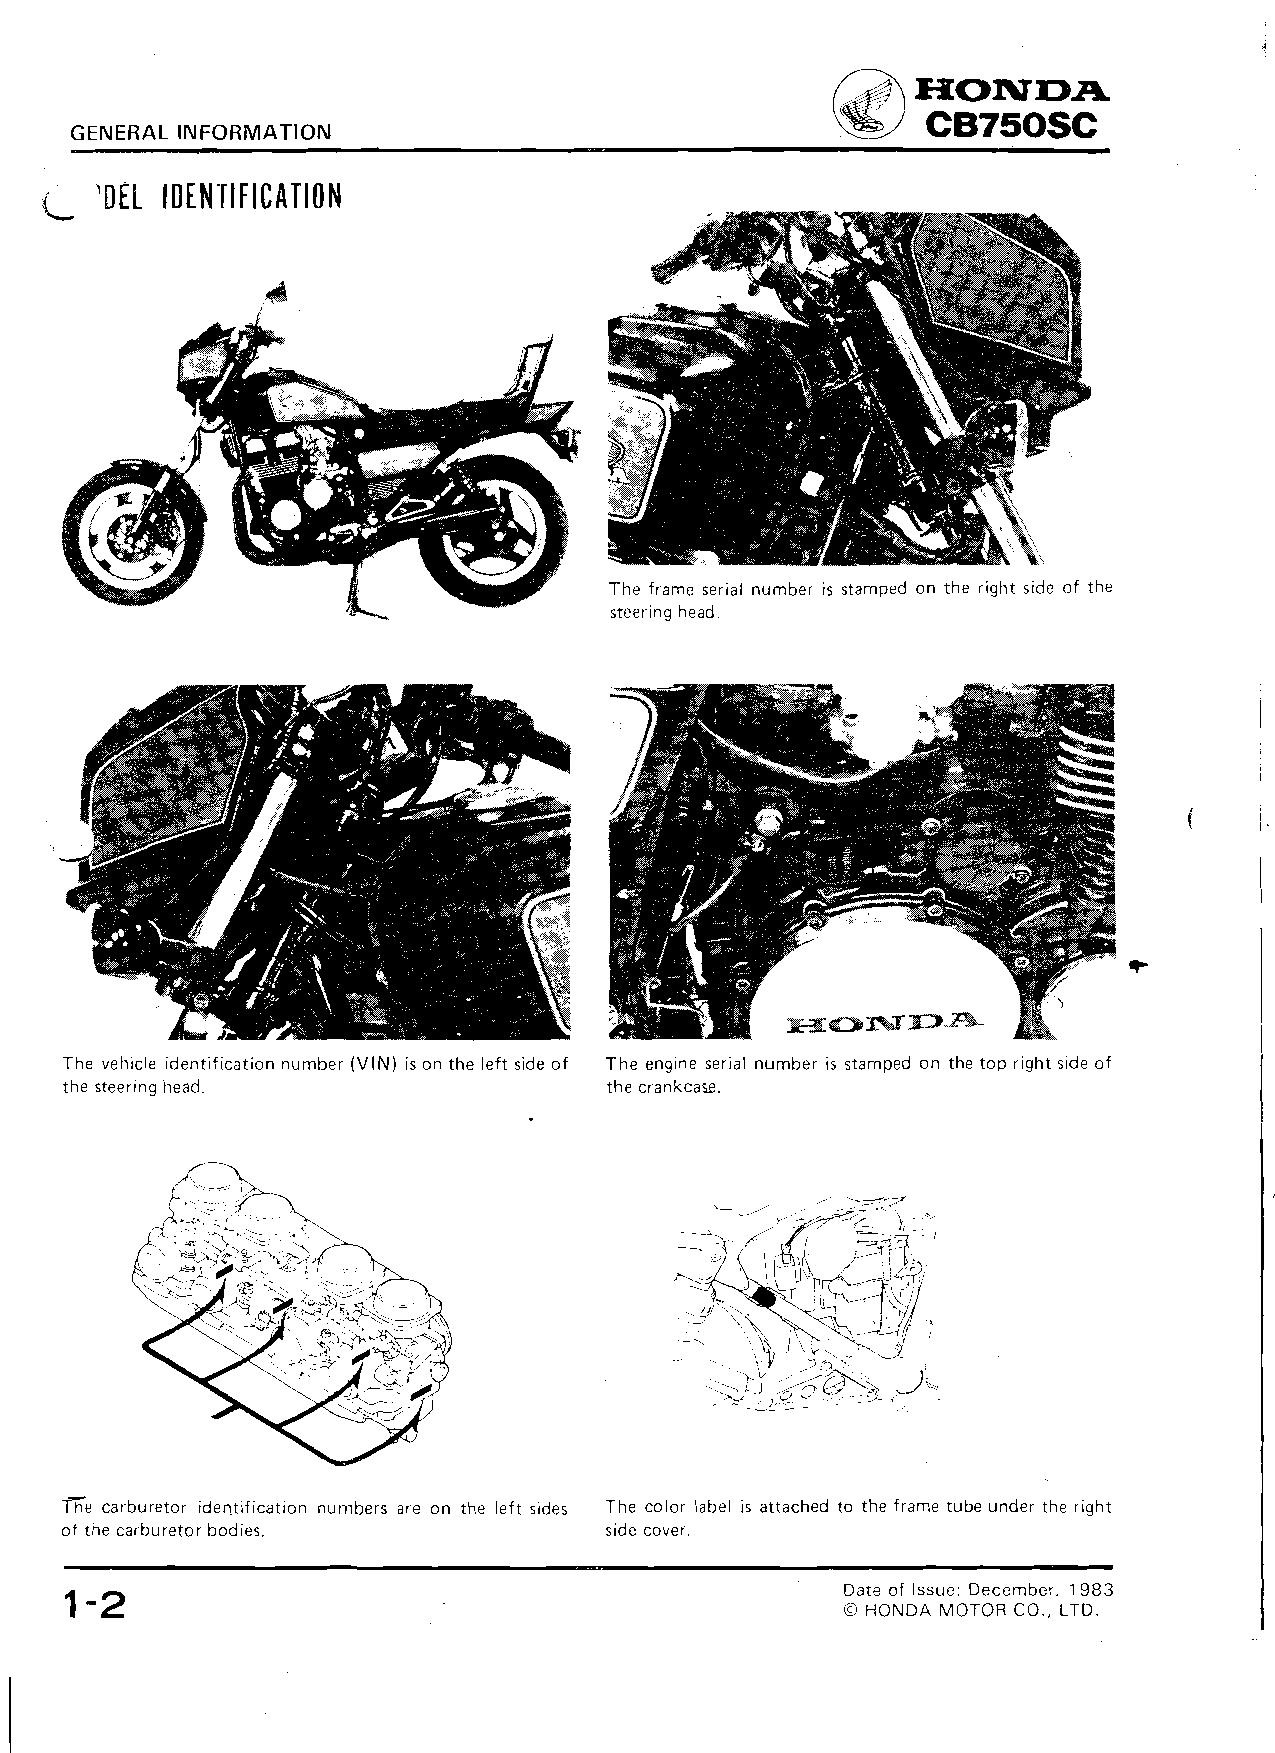 File:Honda CB750SC Nighthawk 1984 Service Manual.pdf